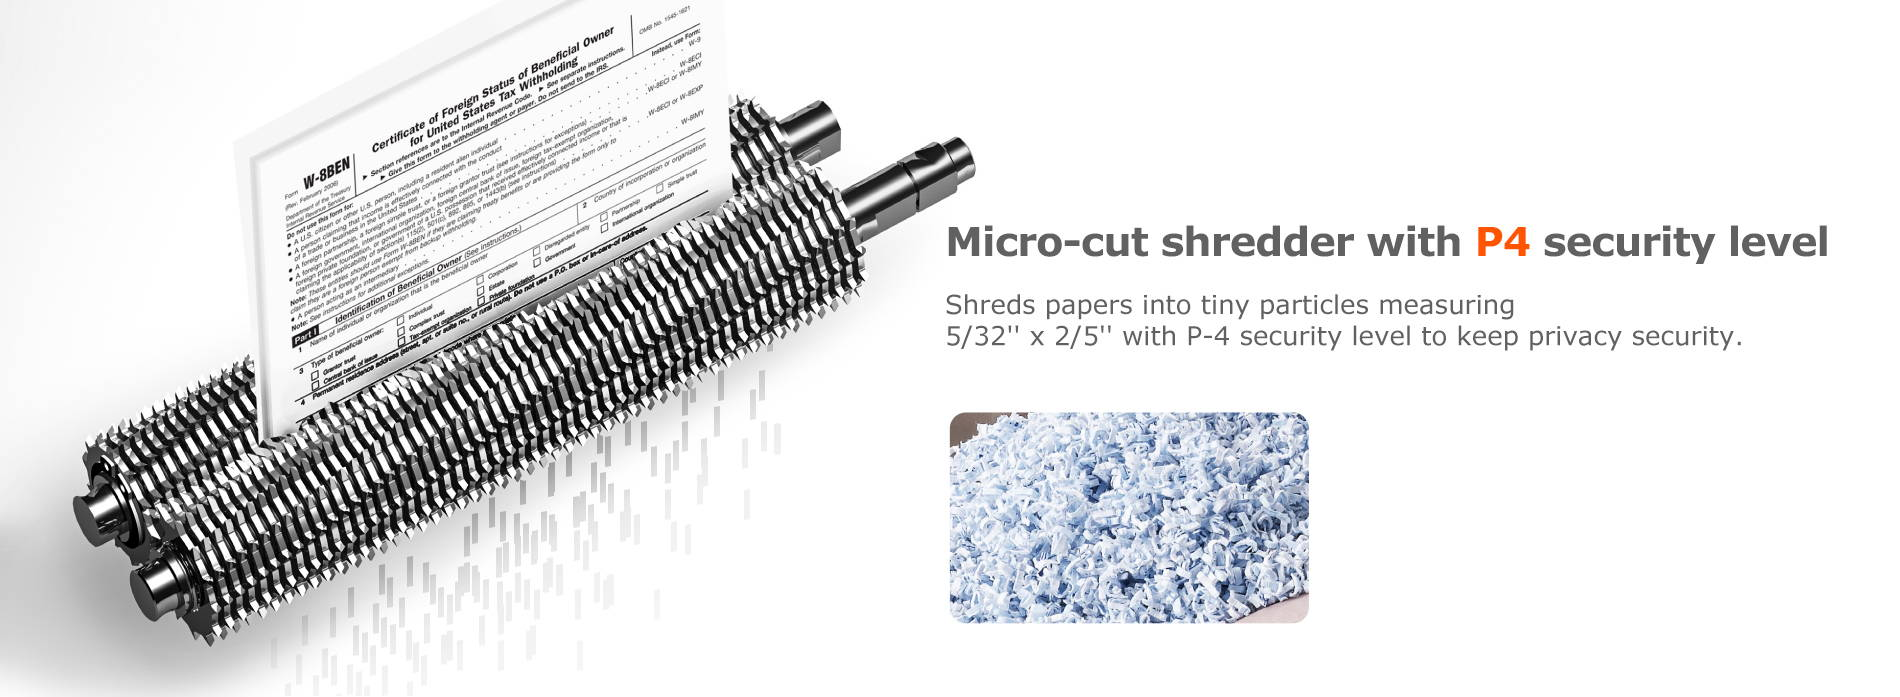 Micro-cut shredder with P4 security level shreds papers into tiny particles measuring 5/32'' x 2/5'' with P-4 security level to keep privacy security.